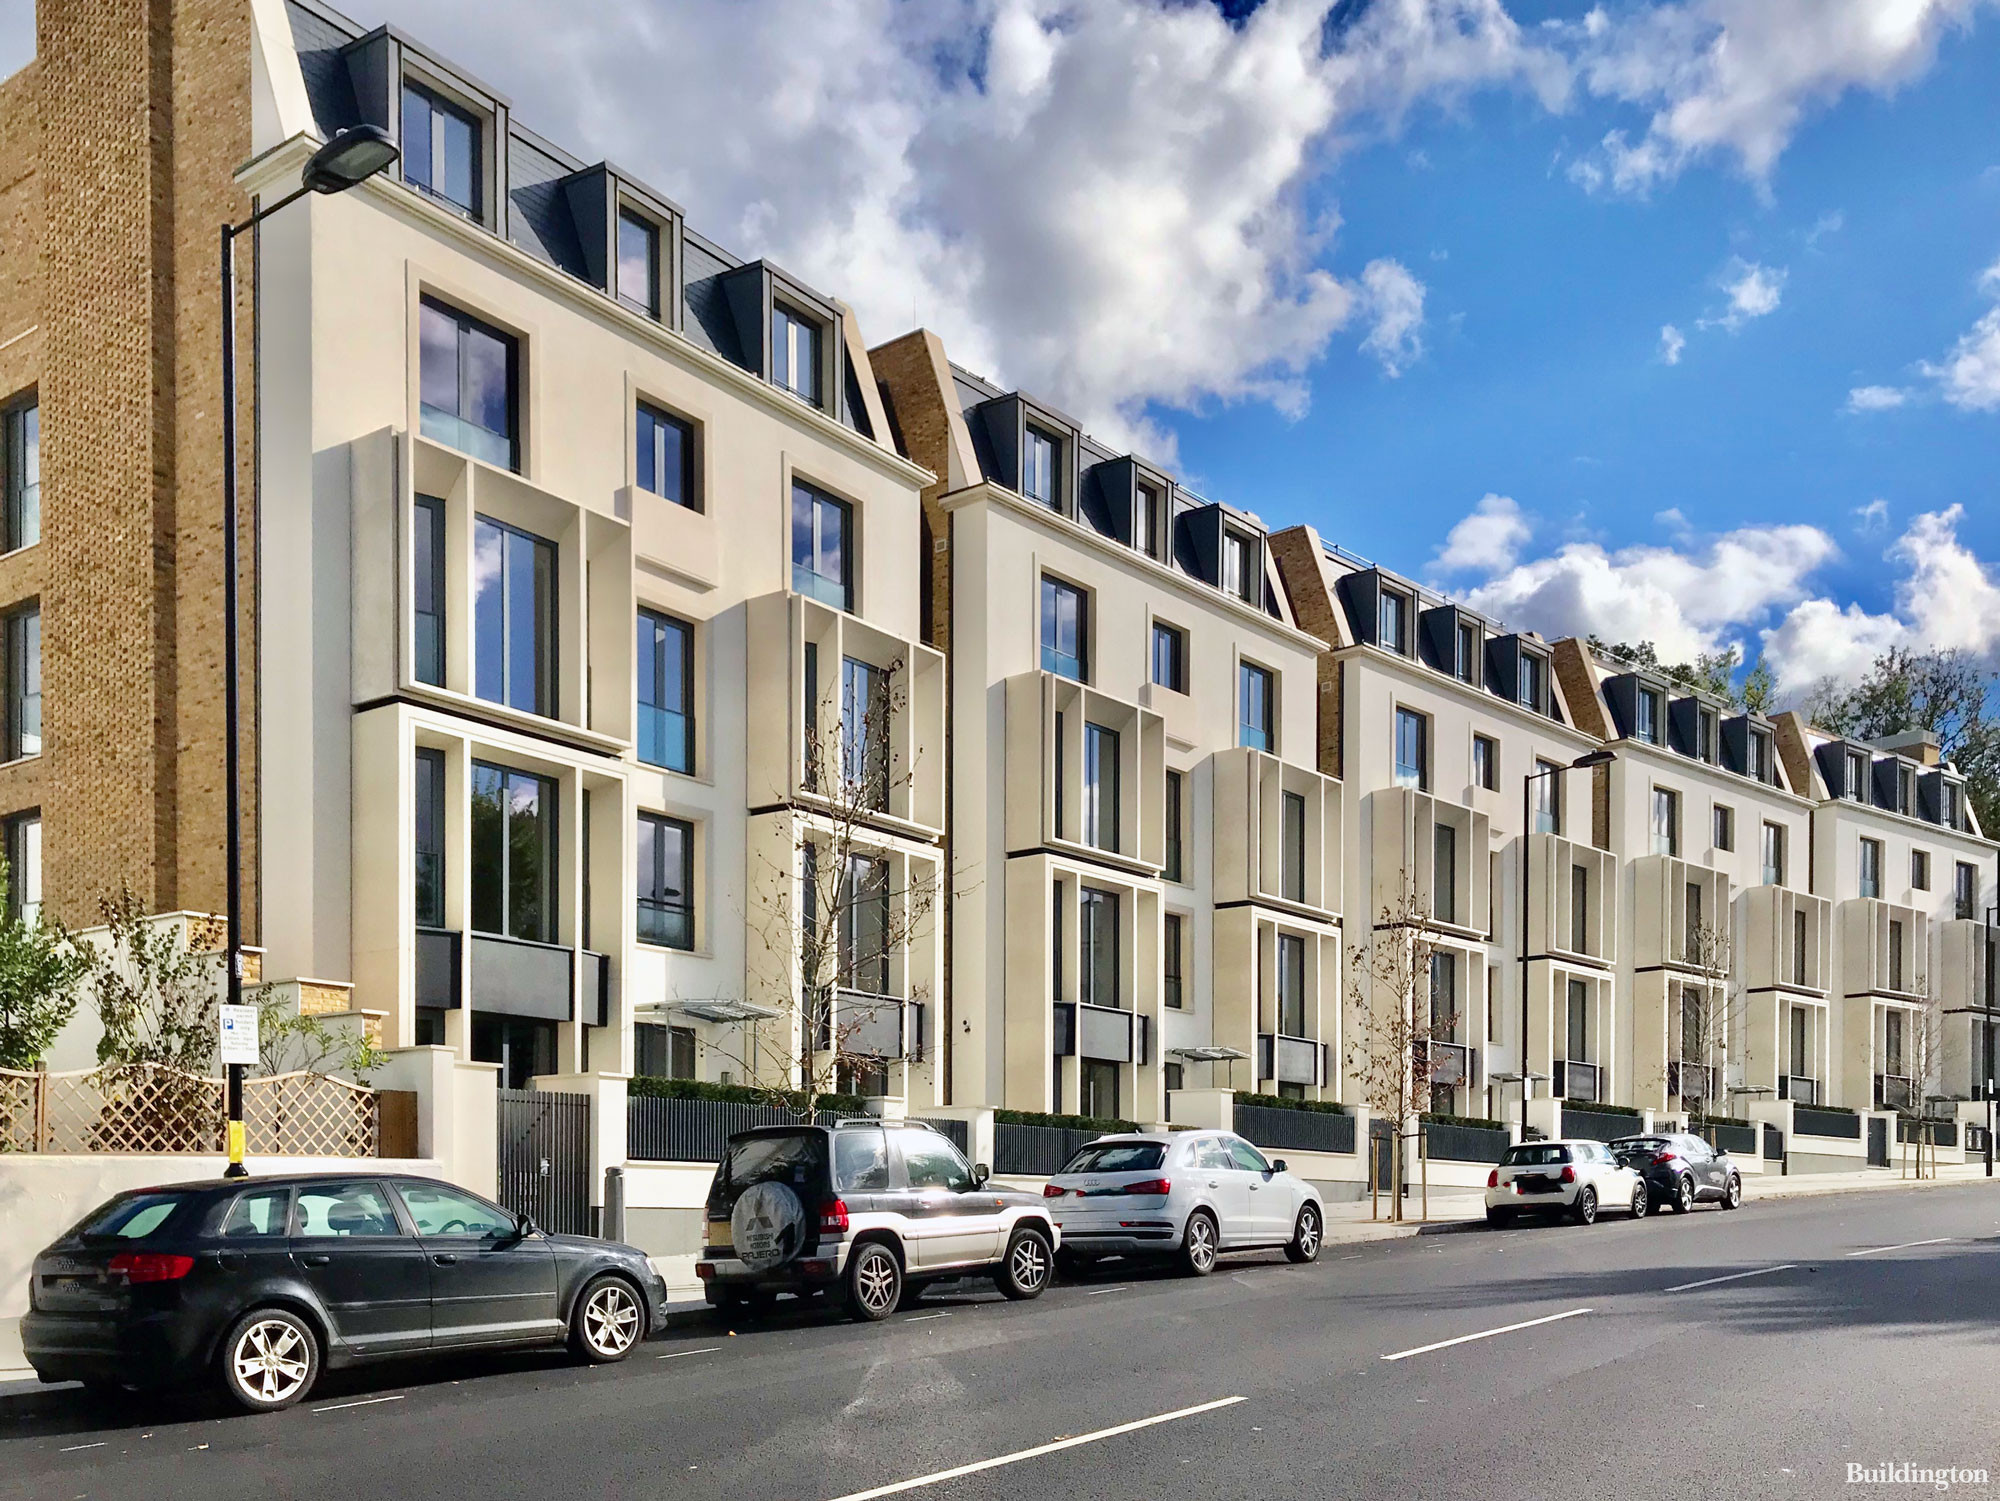 Eighty Holland Park at 80 Holland Park brand new residential development in Holland Park, London W11. Apartments for sale through agent Knight Frank.